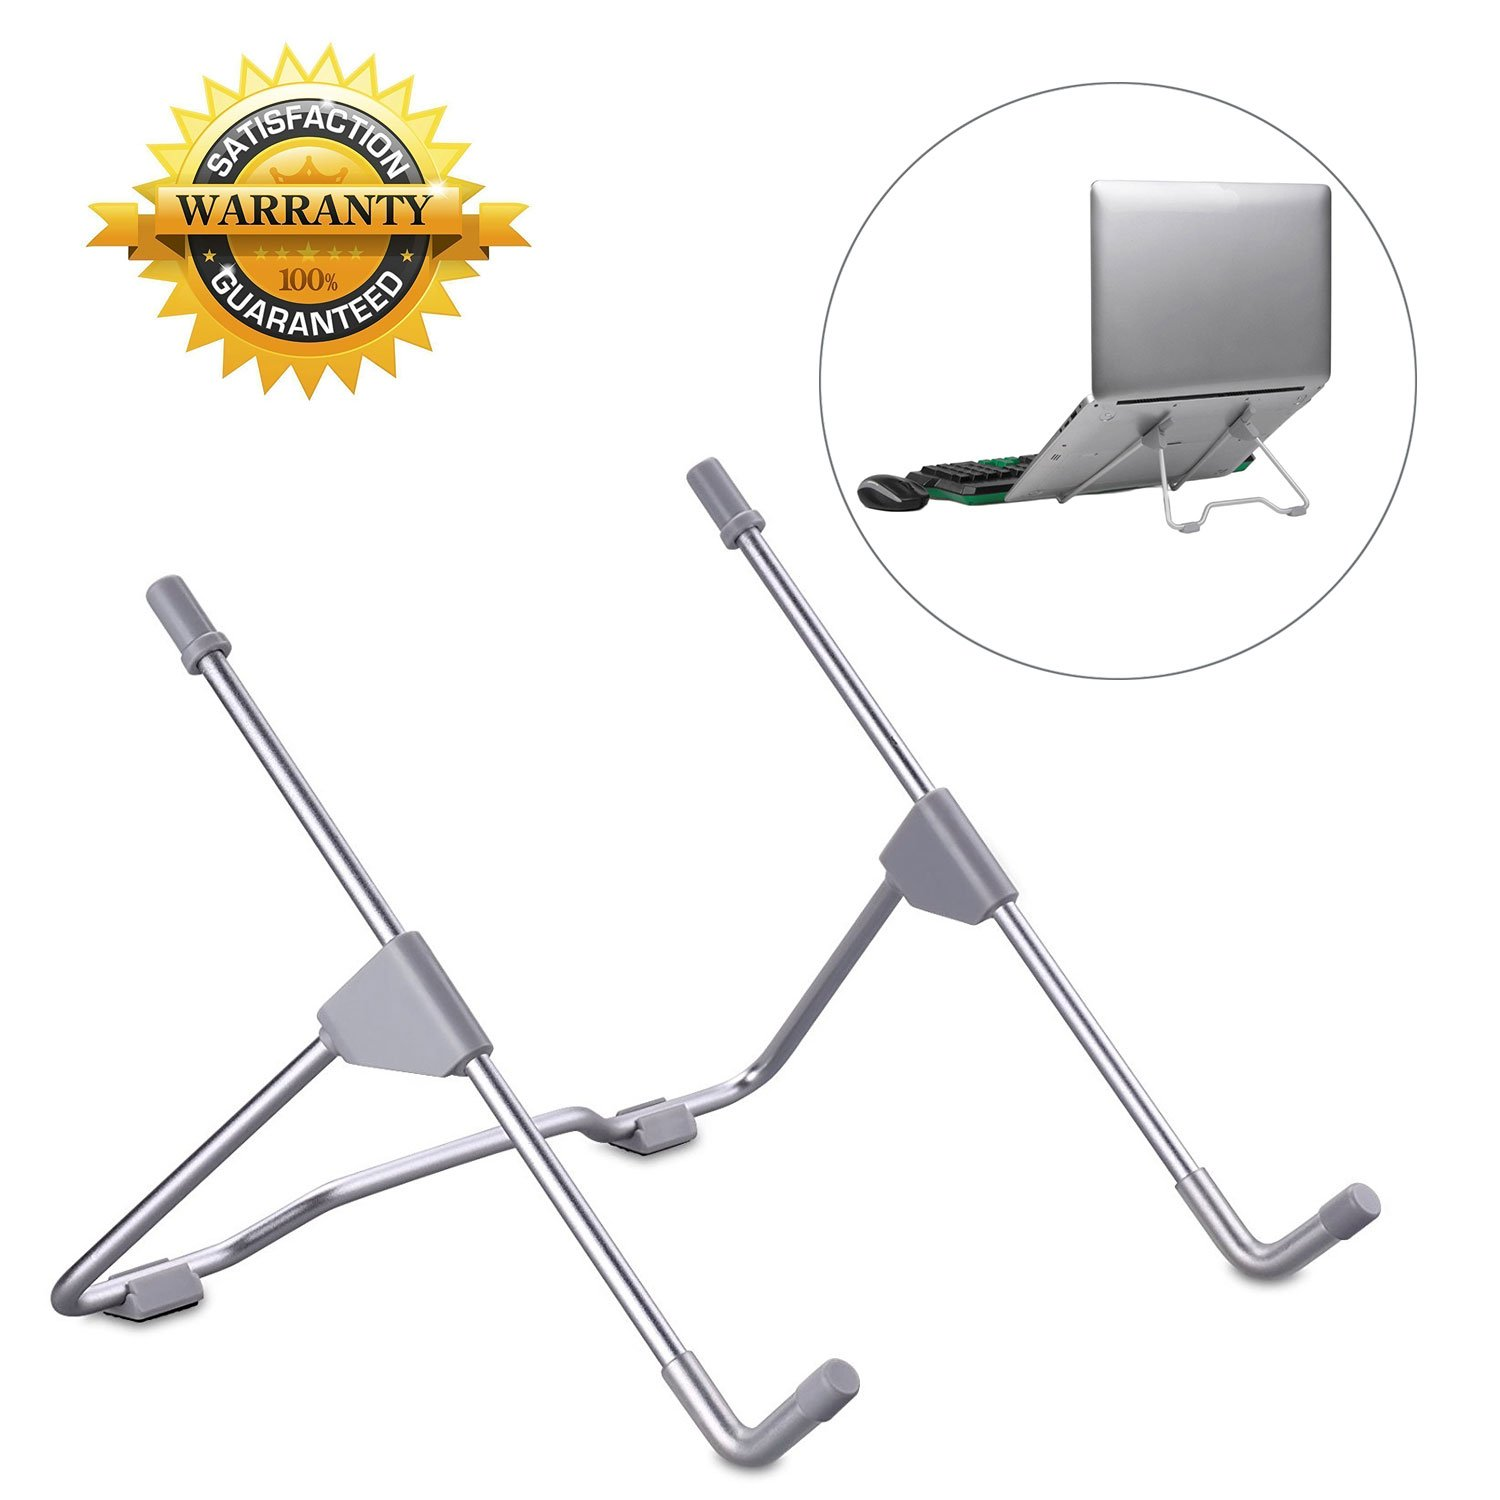 LURICO Adjustable Laptop Stand, Minimalist Portable Folding Aluminum Cooling Universal Laptop Stand for Laptop/iPad/Notebook, Light Weight, Foldable, Adjustable Height Width & Angle